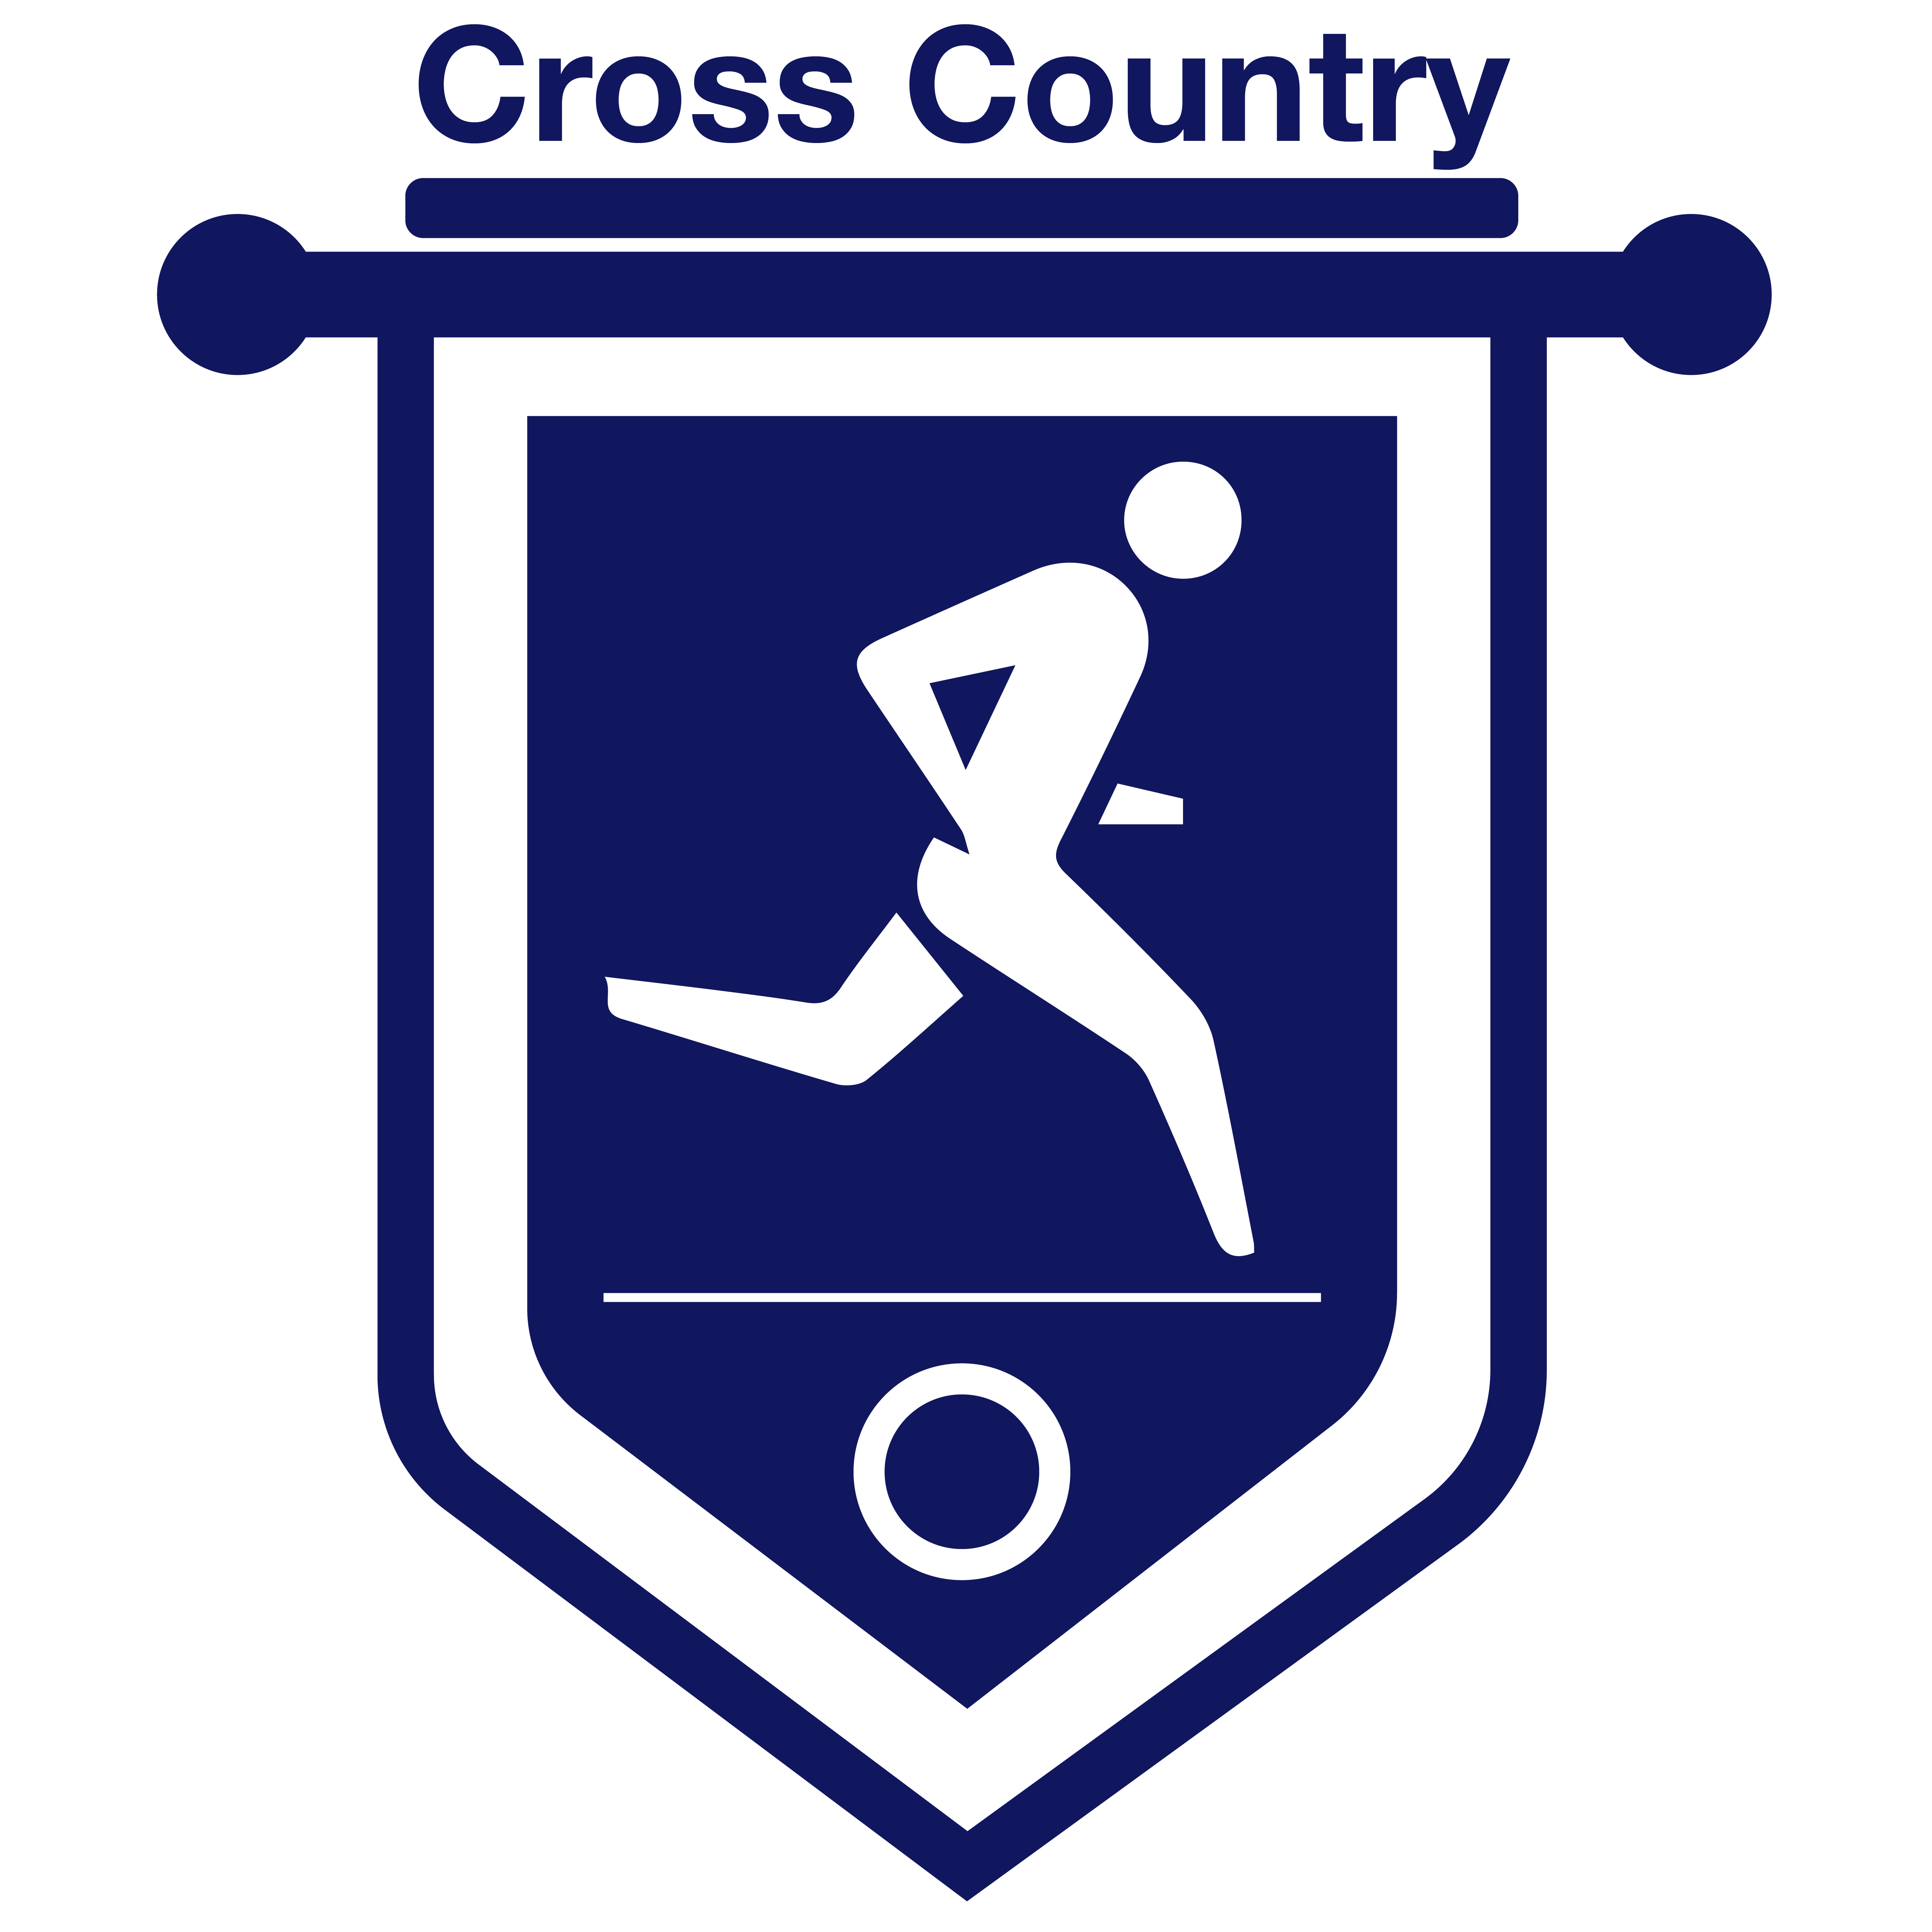 Track clipart track and field. Lacrosse southlake christian academy